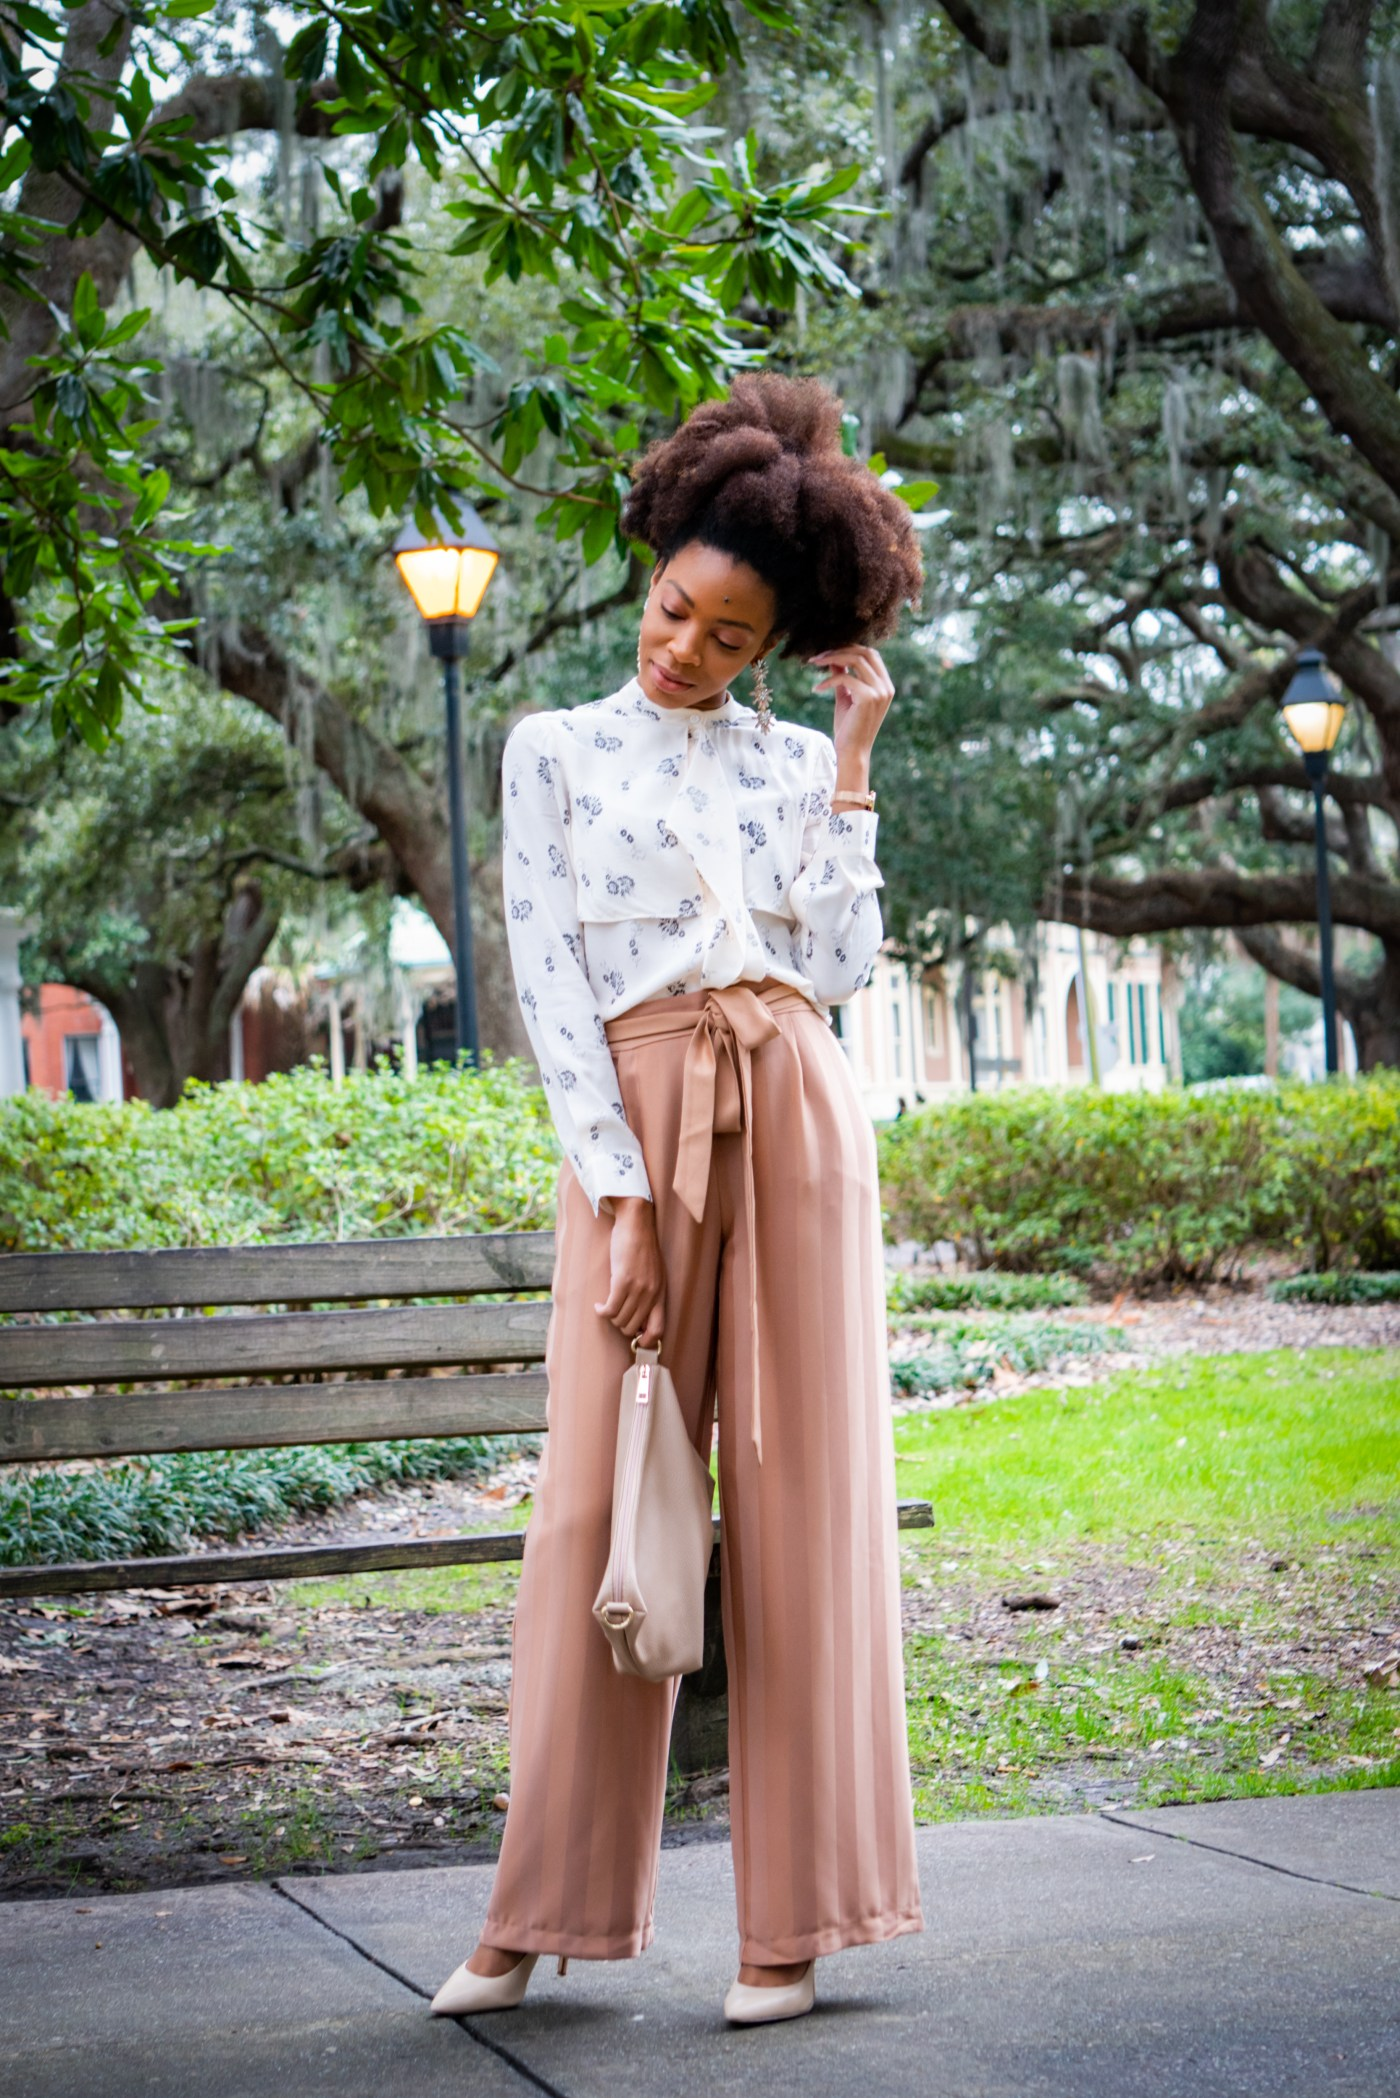 Soft and Feminine – My Typical Savannah Day